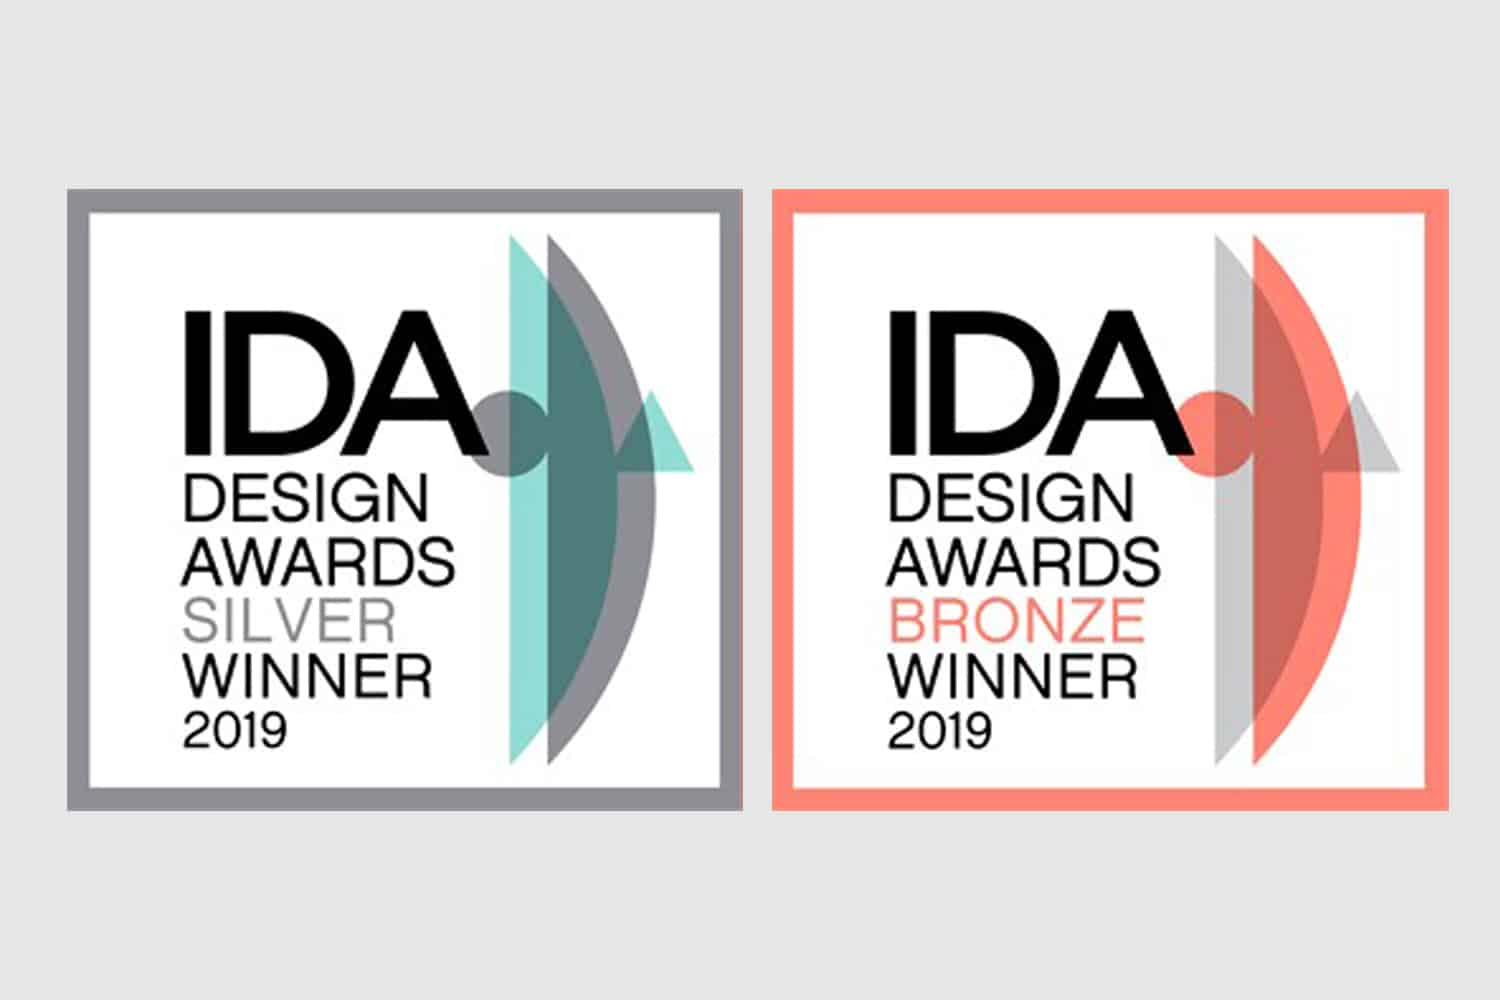 IDA 2019, Projekt Riedenburg | Winner Silver and Bronze